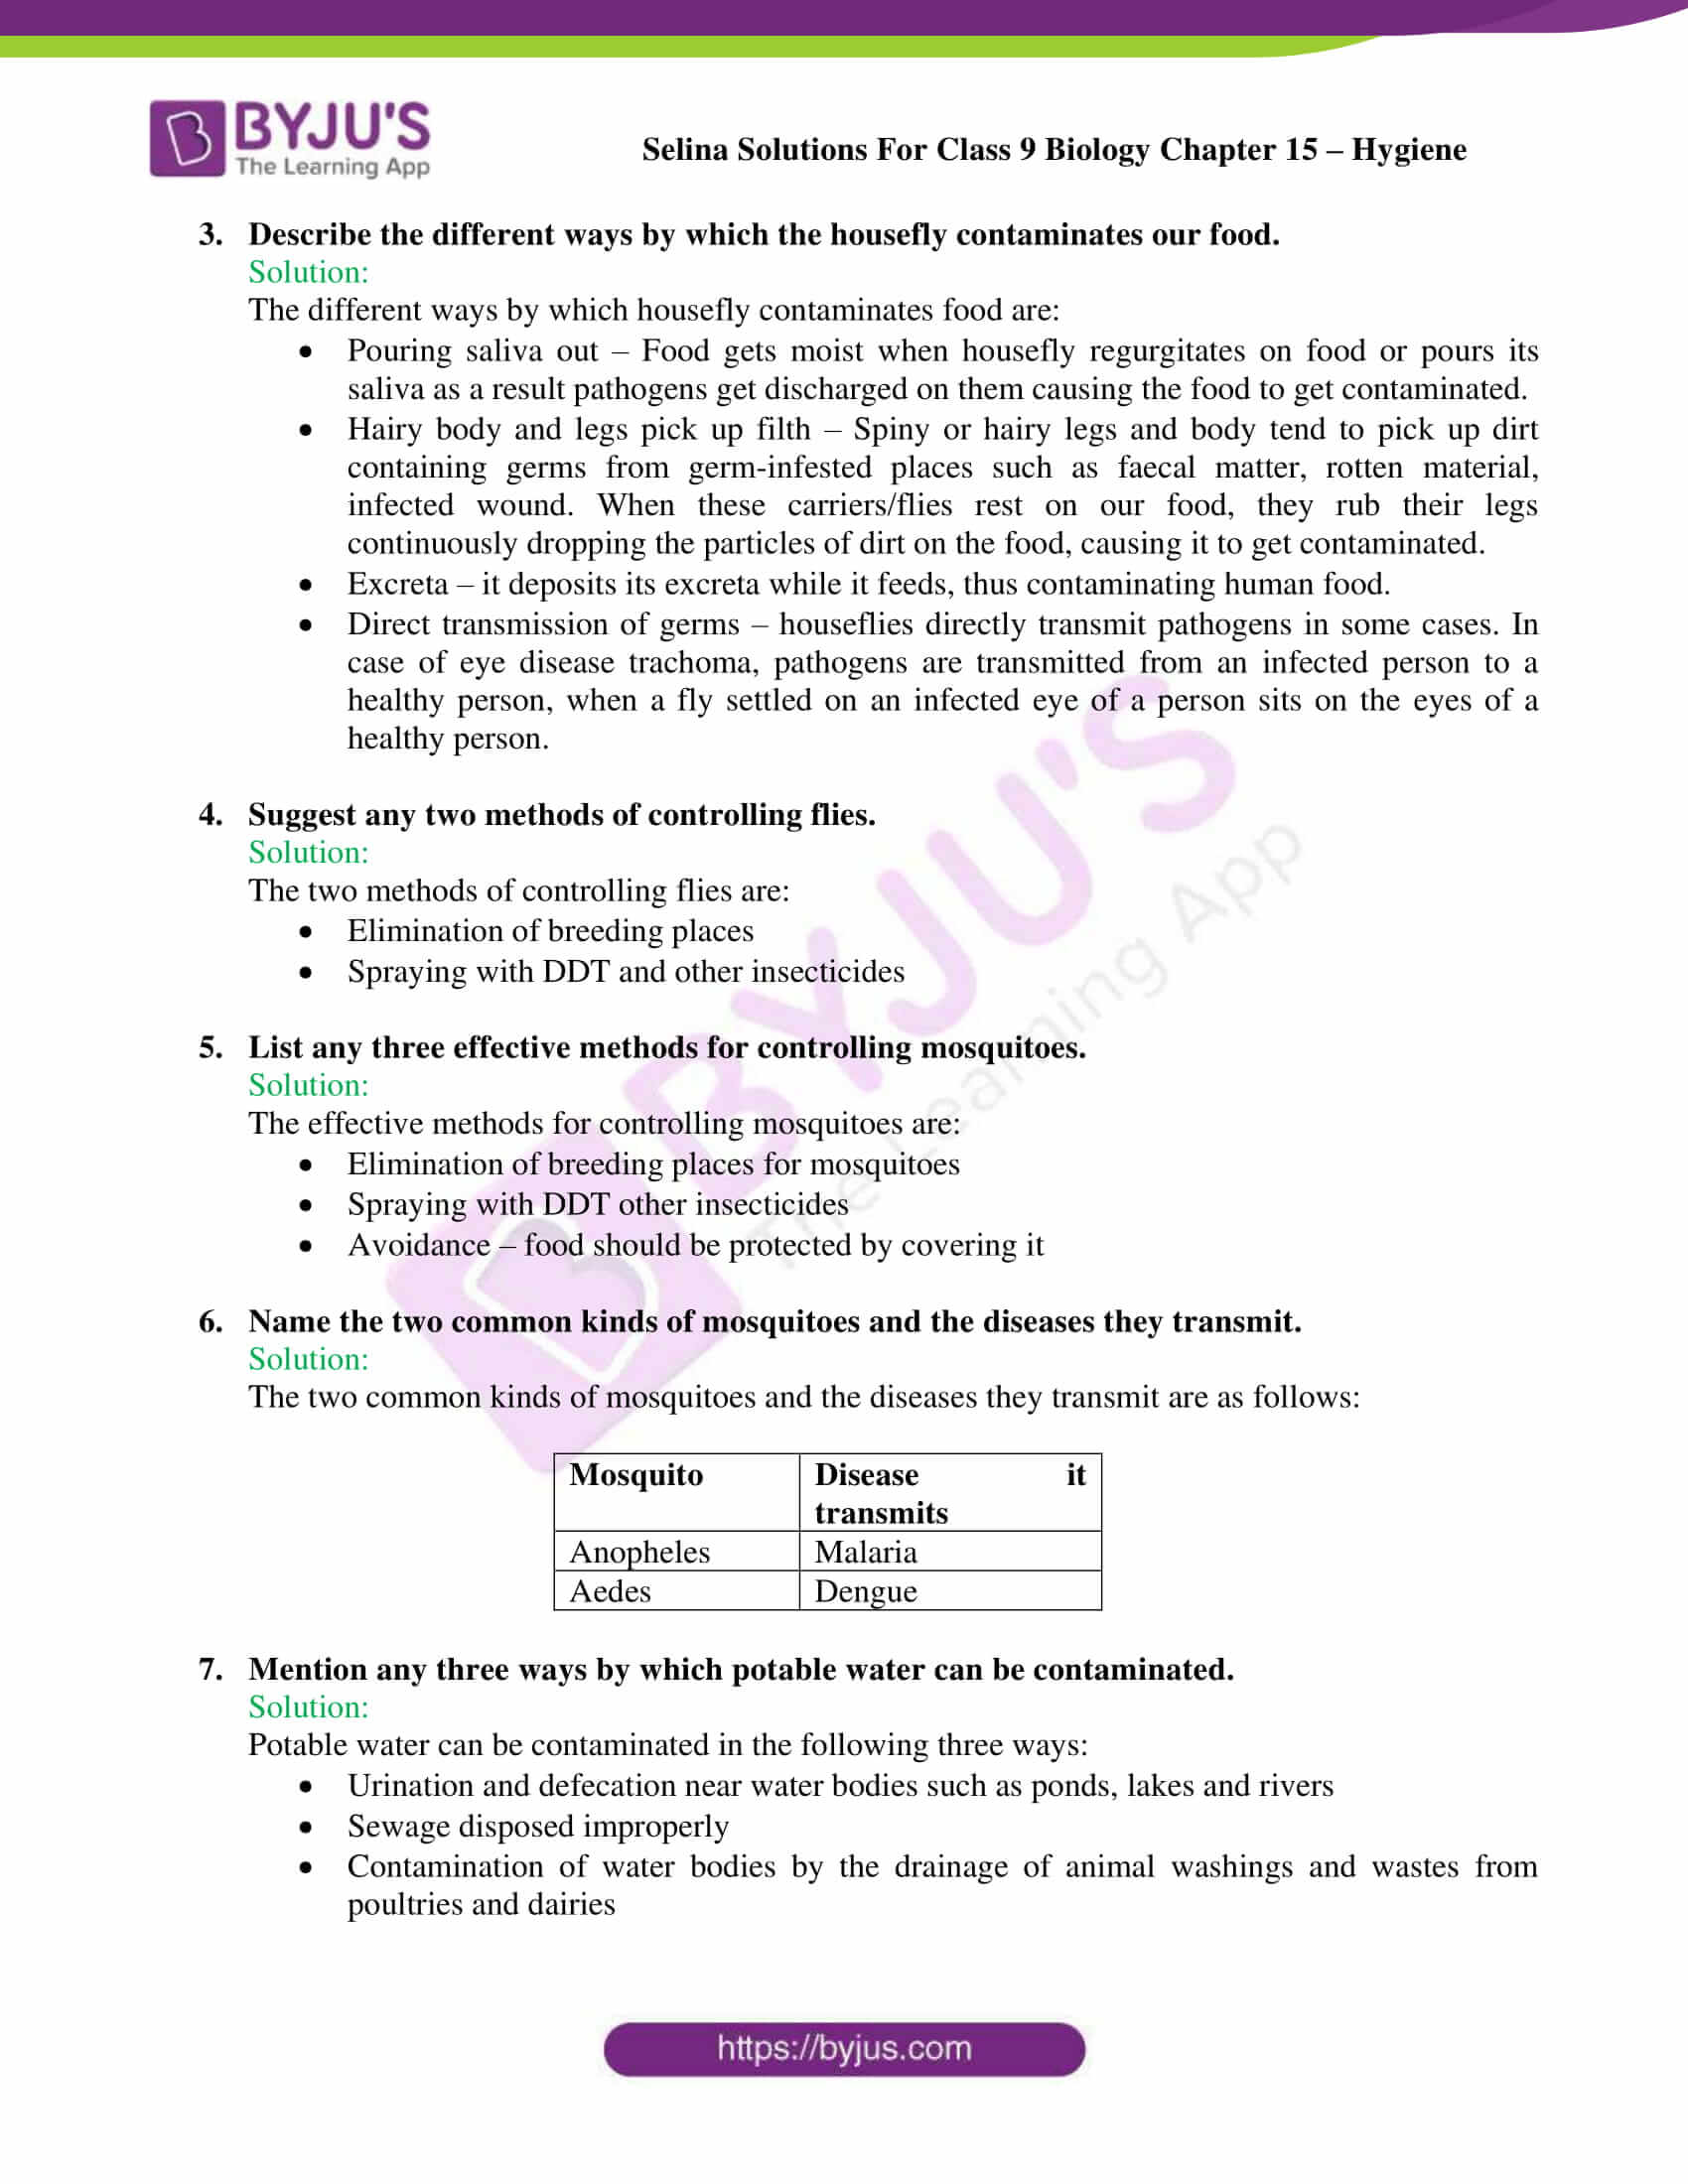 Selina Solutions Class 9 Biology Chapter 15 part 6